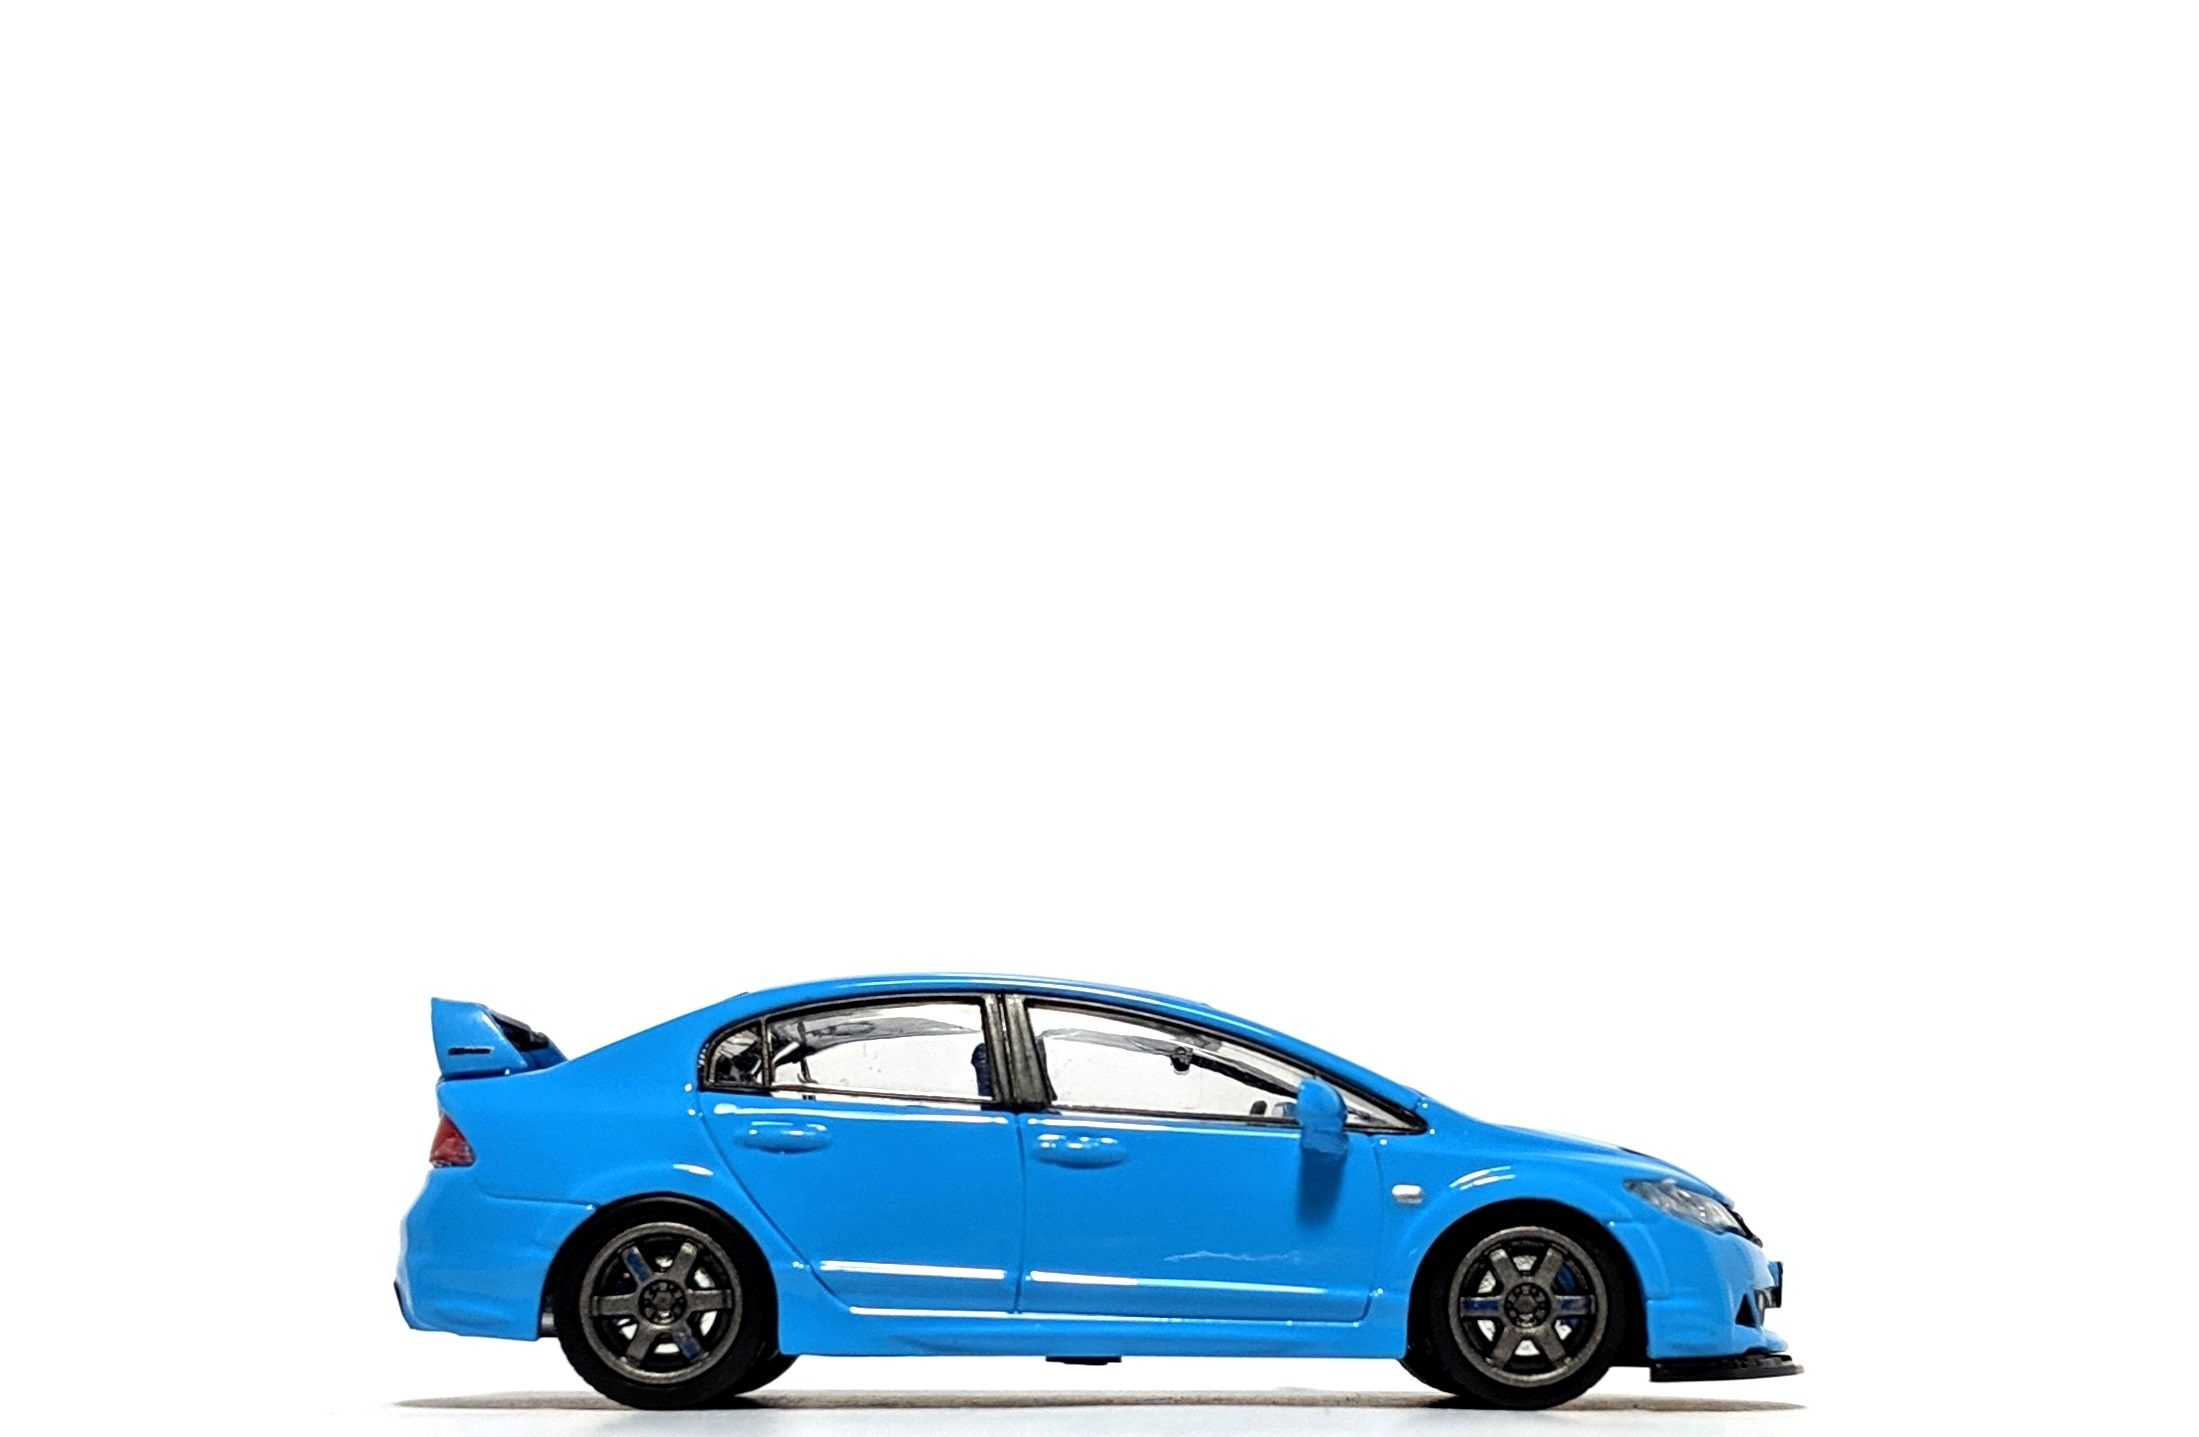 Honda Civic FD2 Mugen RR (Phillipine Special Edition), by Inno64